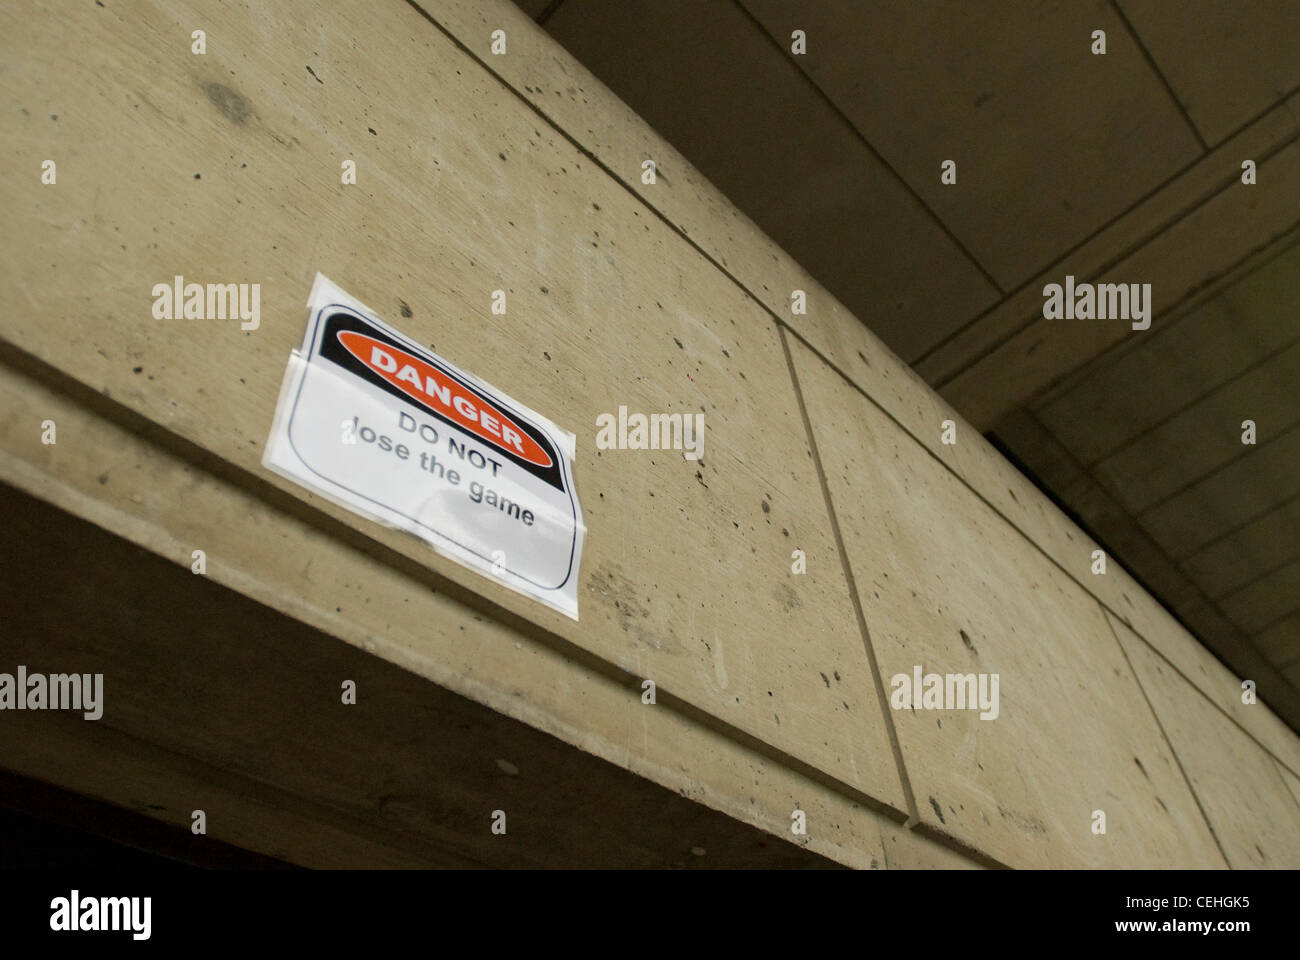 Hackers put up 130 humorous 'DANGER' signs around the Massachusetts Institute of Technology campus on May - Stock Image